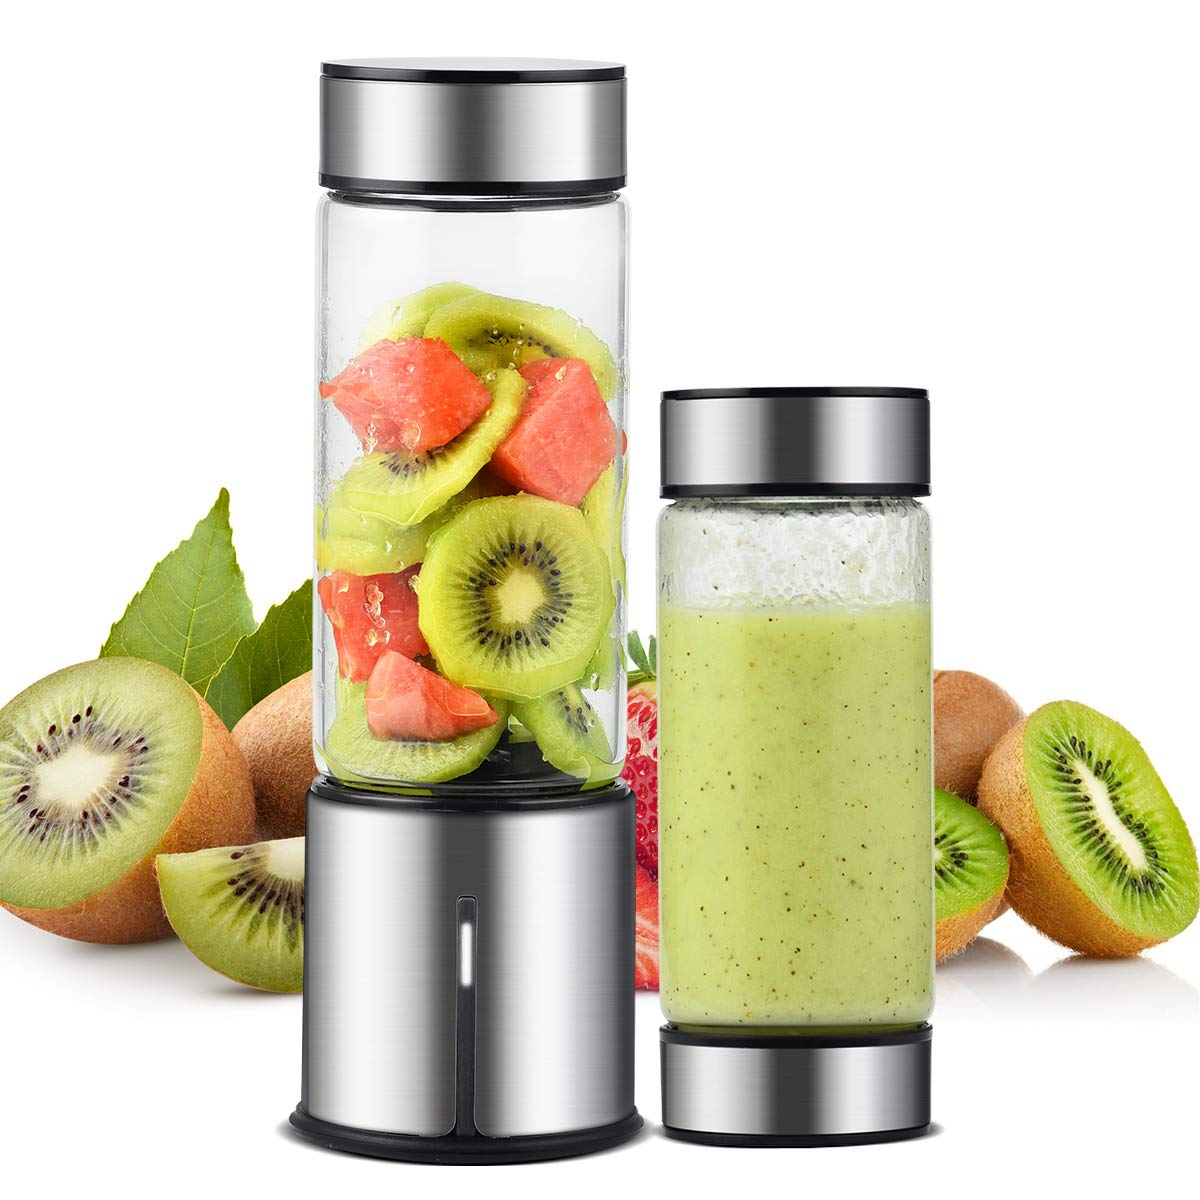 Portable Blender, TTLIFE 450ML Personal Juicer Blender with Double Cover, 5000mAH USB Rechargeable Cordless Smoothie Glass Blender for Travel, Gym, Picnic, Office, Home, Kitchen (FDA, BPA free) by TTLIFE